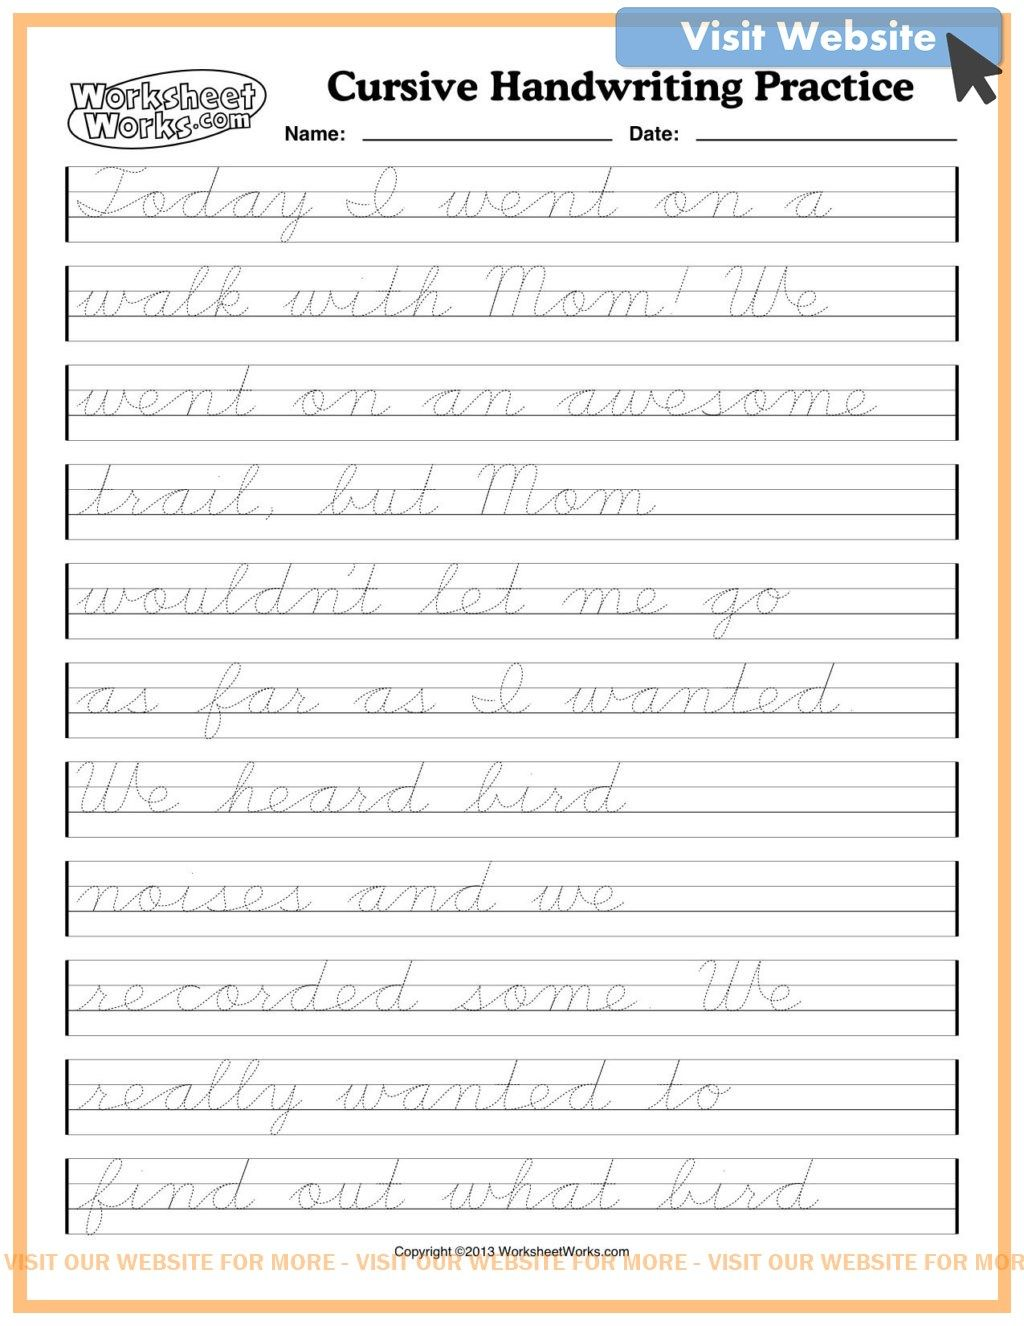 Lettering Practice Sheets Free Printable Cursive Handwriting Practice Cursive Writing Worksheets Cursive Handwriting Worksheets